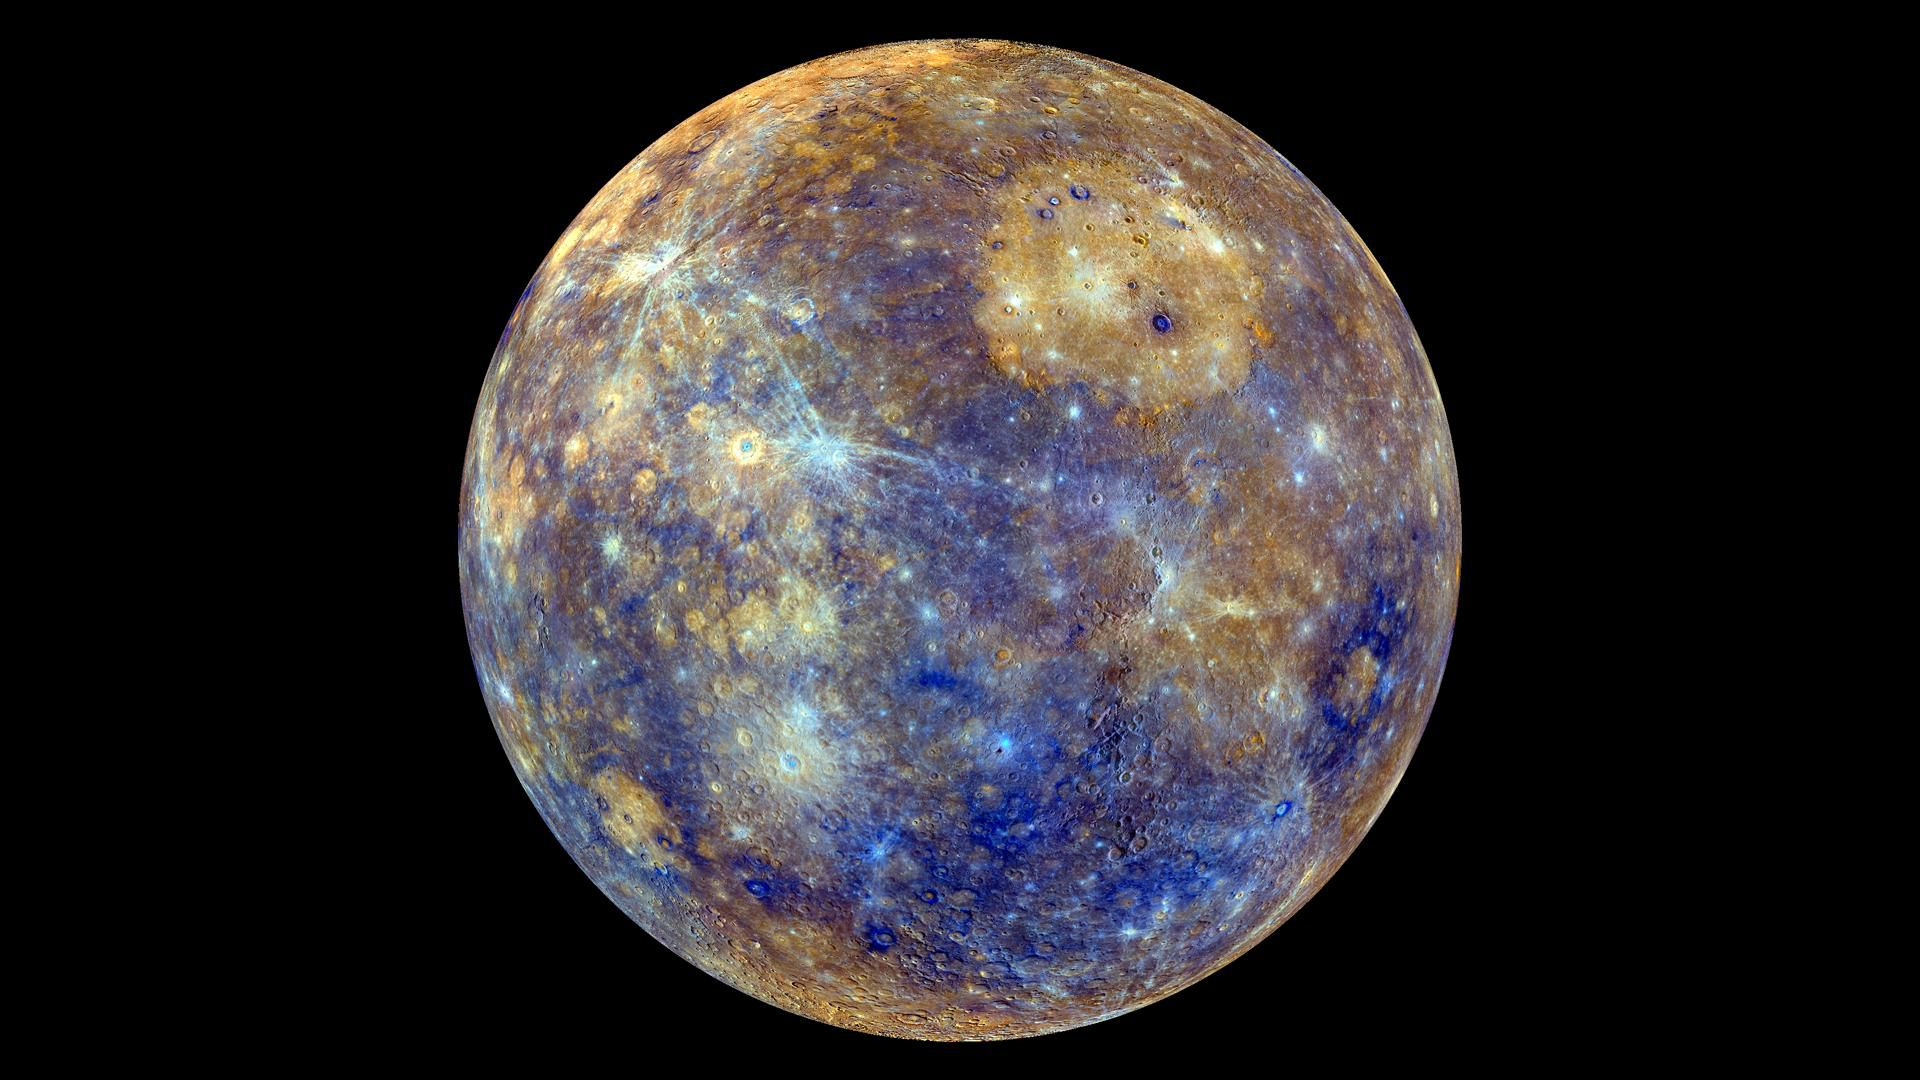 A color-enhanced view of Mercury against a black background